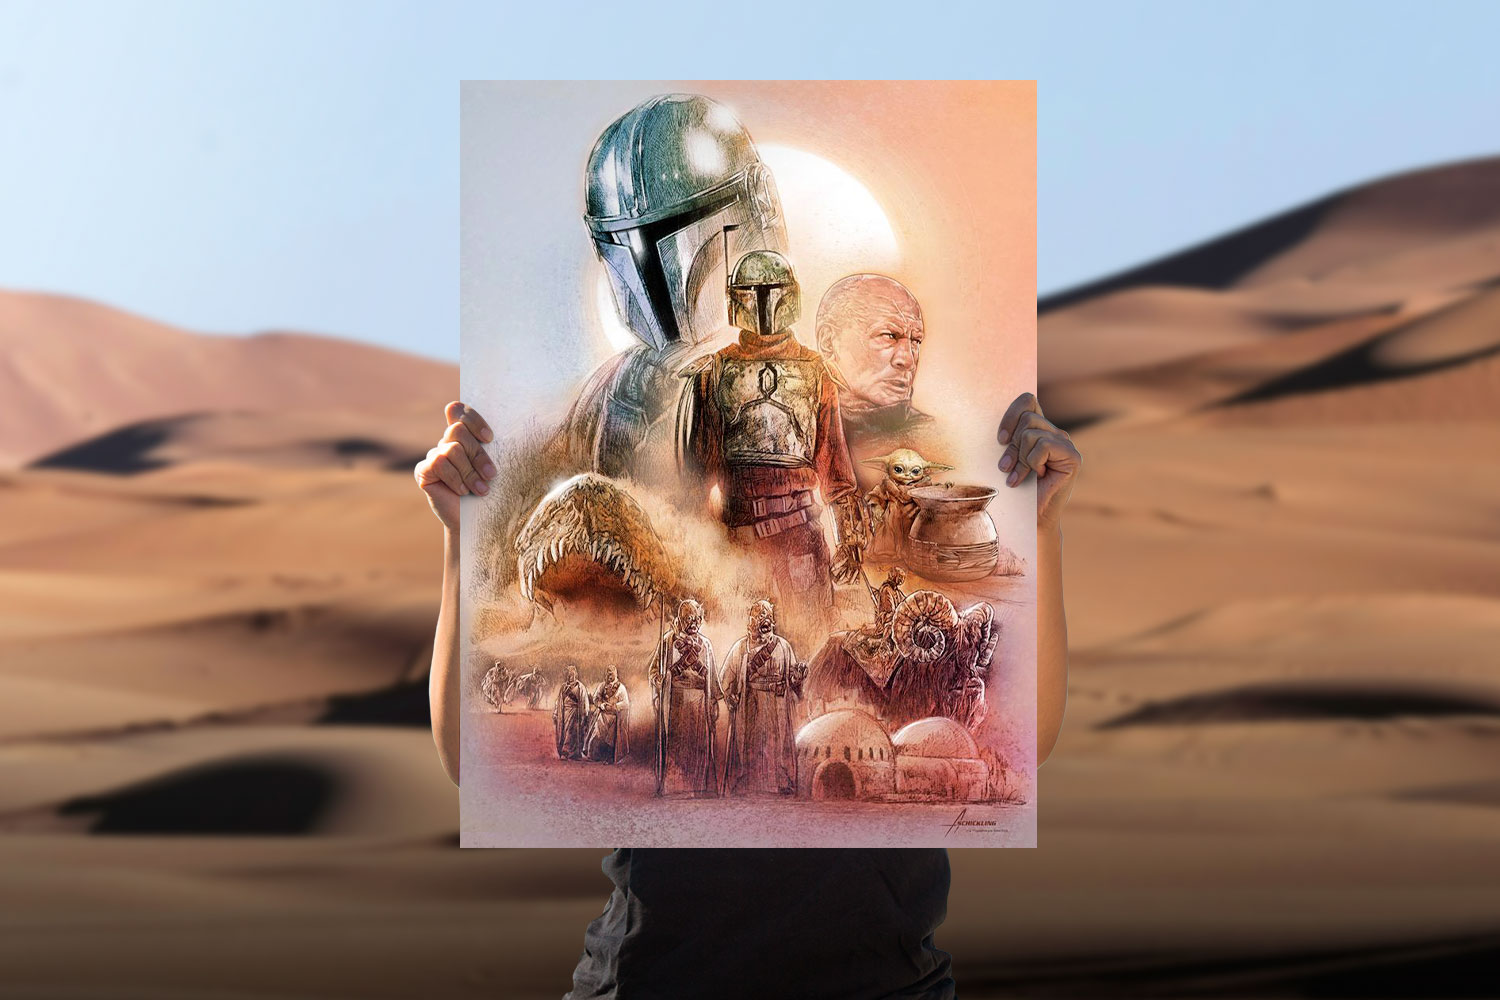 The Marshal of Mos Pelgo Art Print feature image